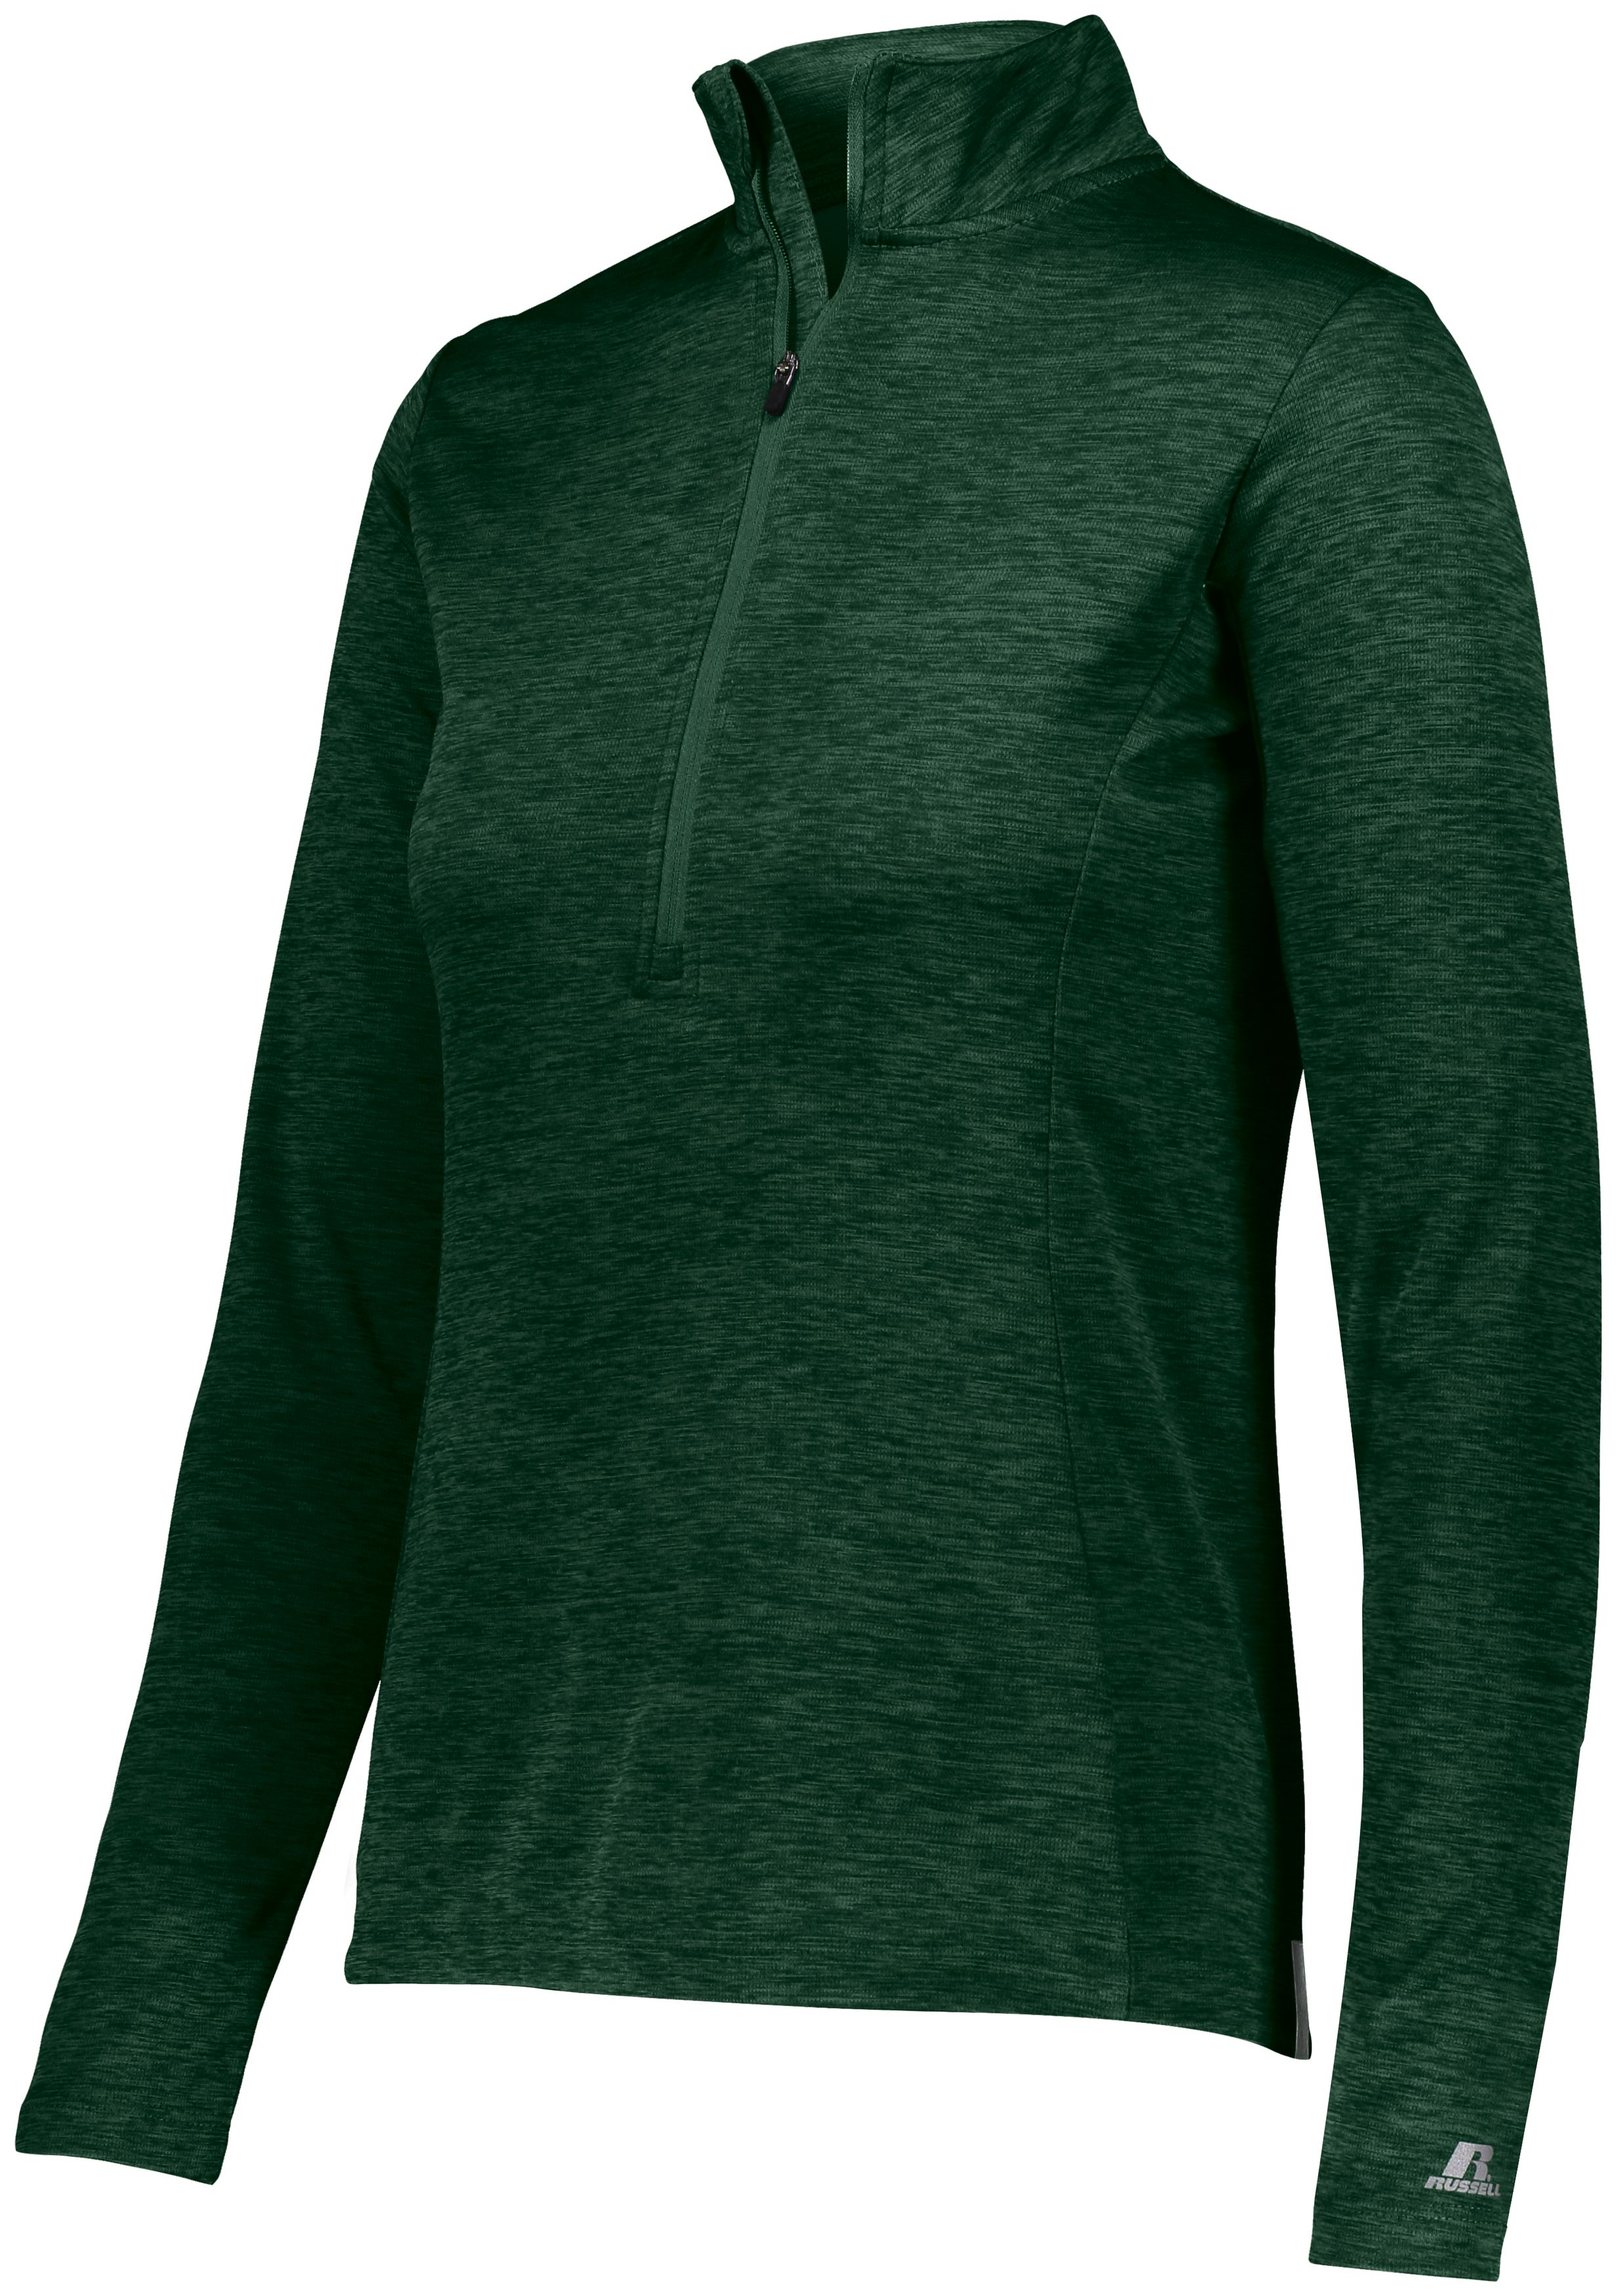 Ladies Dri-Power Lightweight 1/4 Zip Pullover - Dark Green